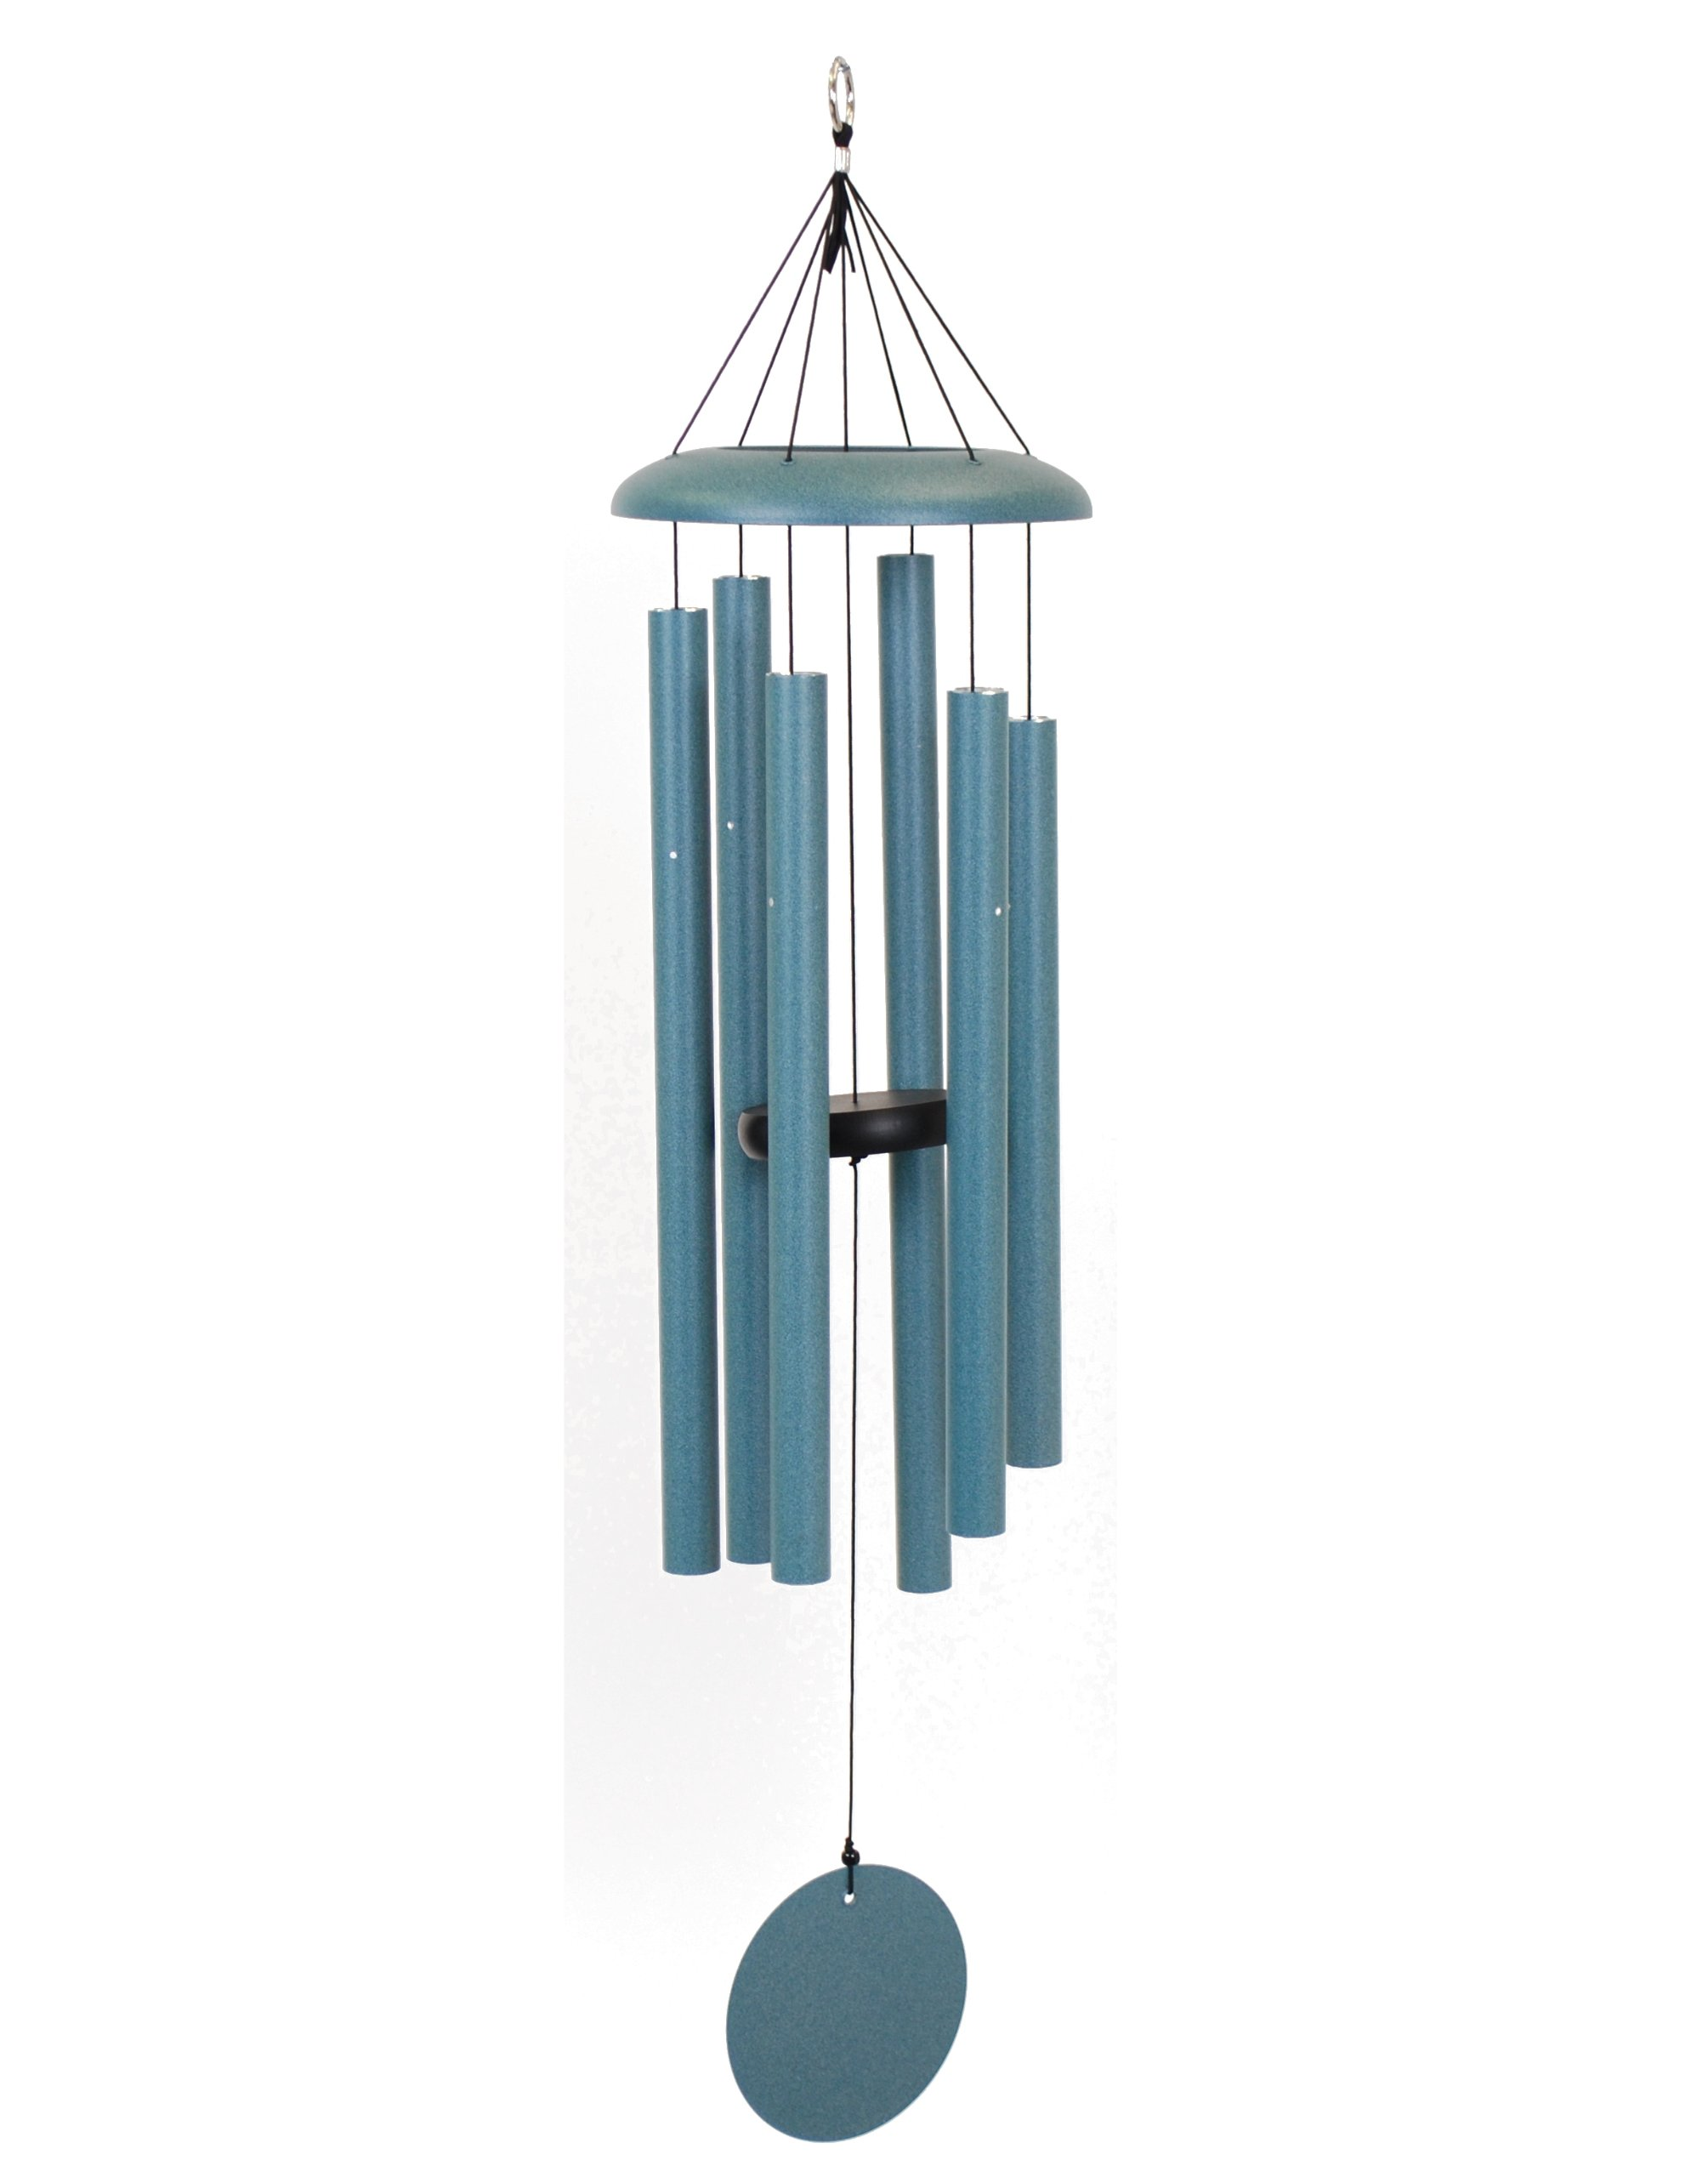 Corinthian Bells 36-inch Windchime, Patina Green